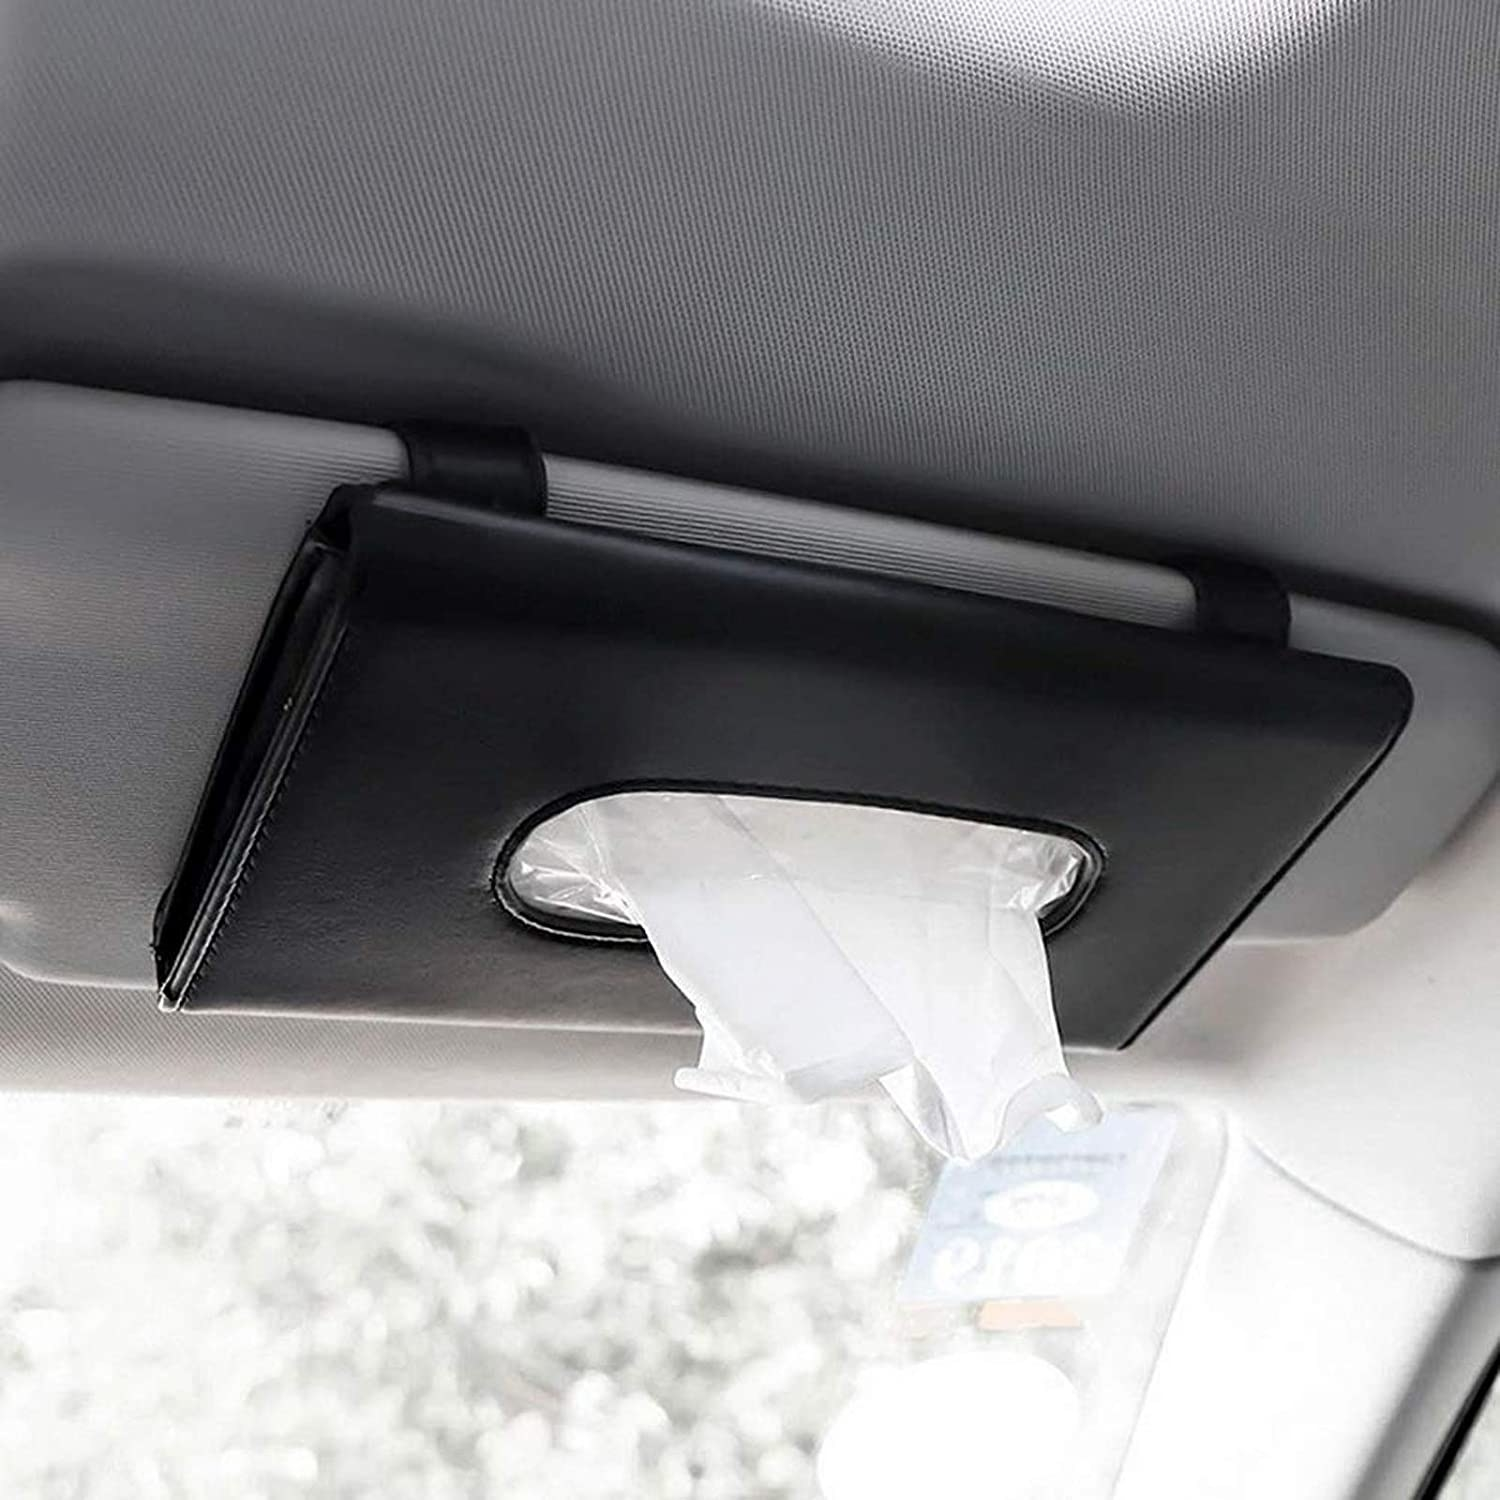 The tissue holder attached to a car visor